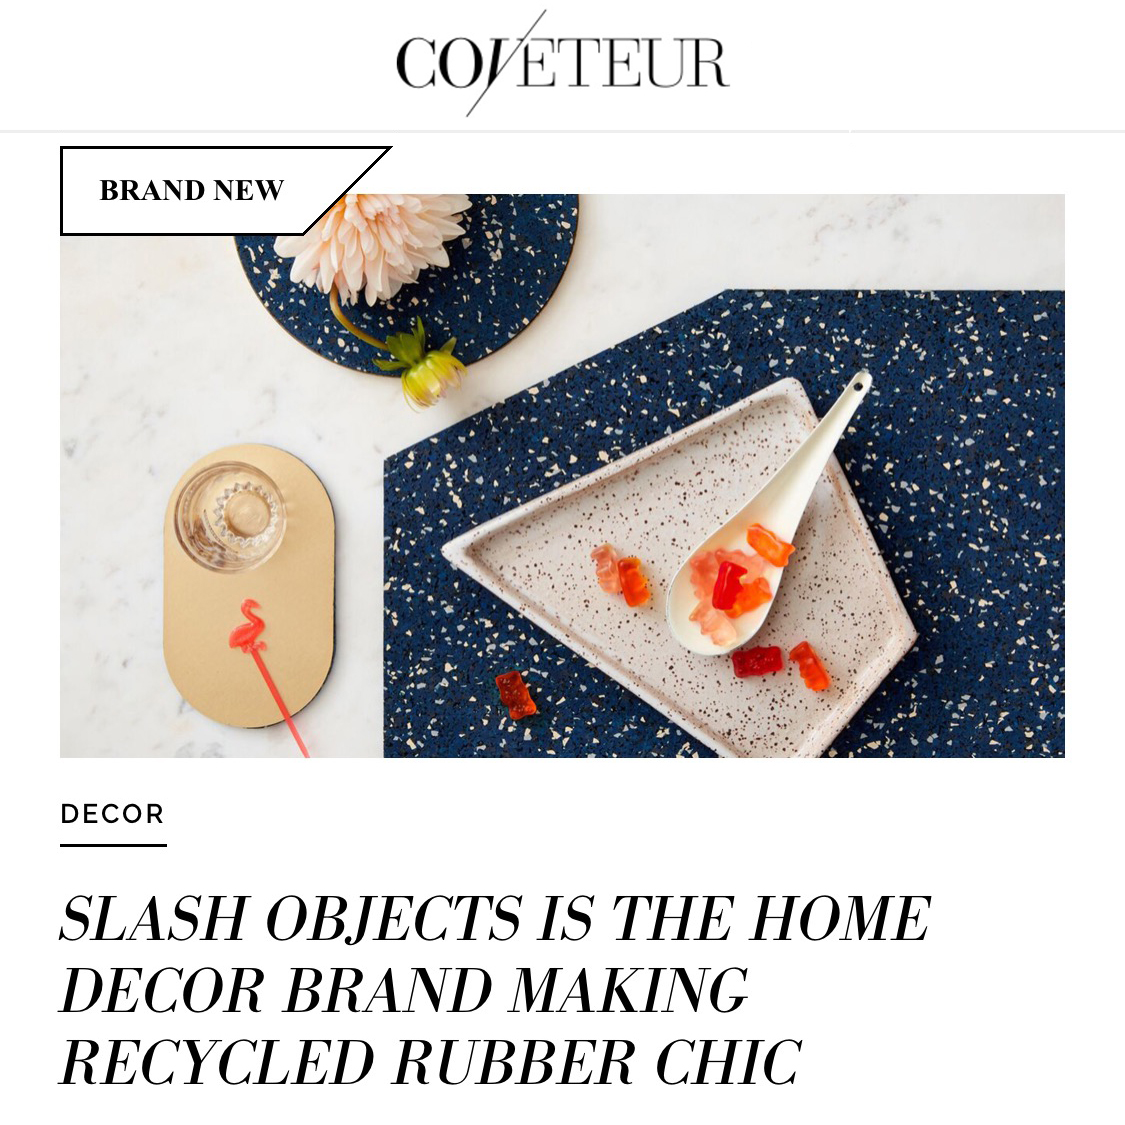 Coveteur-SlashObjects.jpg